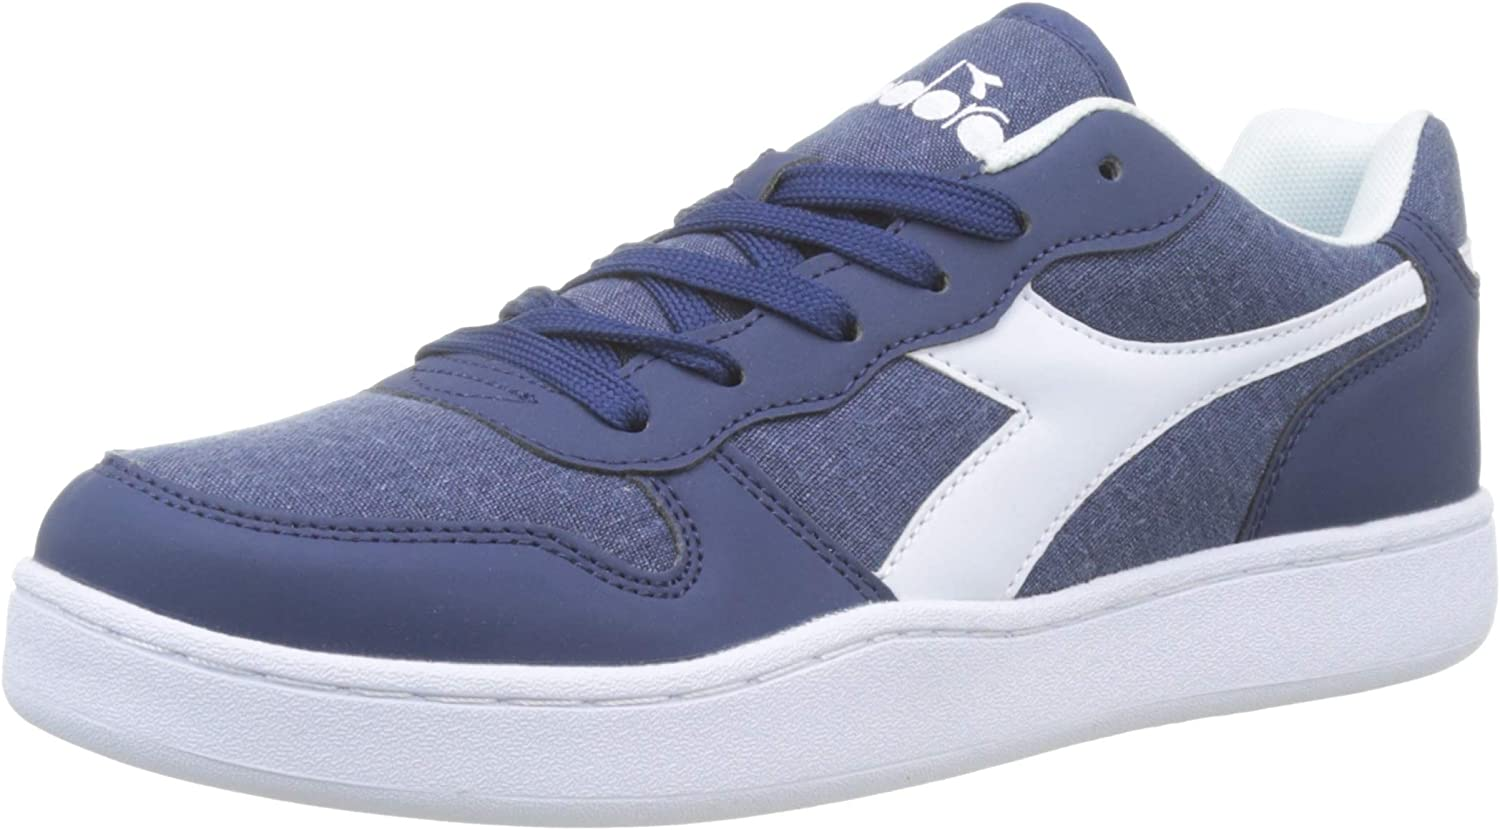 Diadora Unisex Adults' Playground Cv Gymnastics shoes